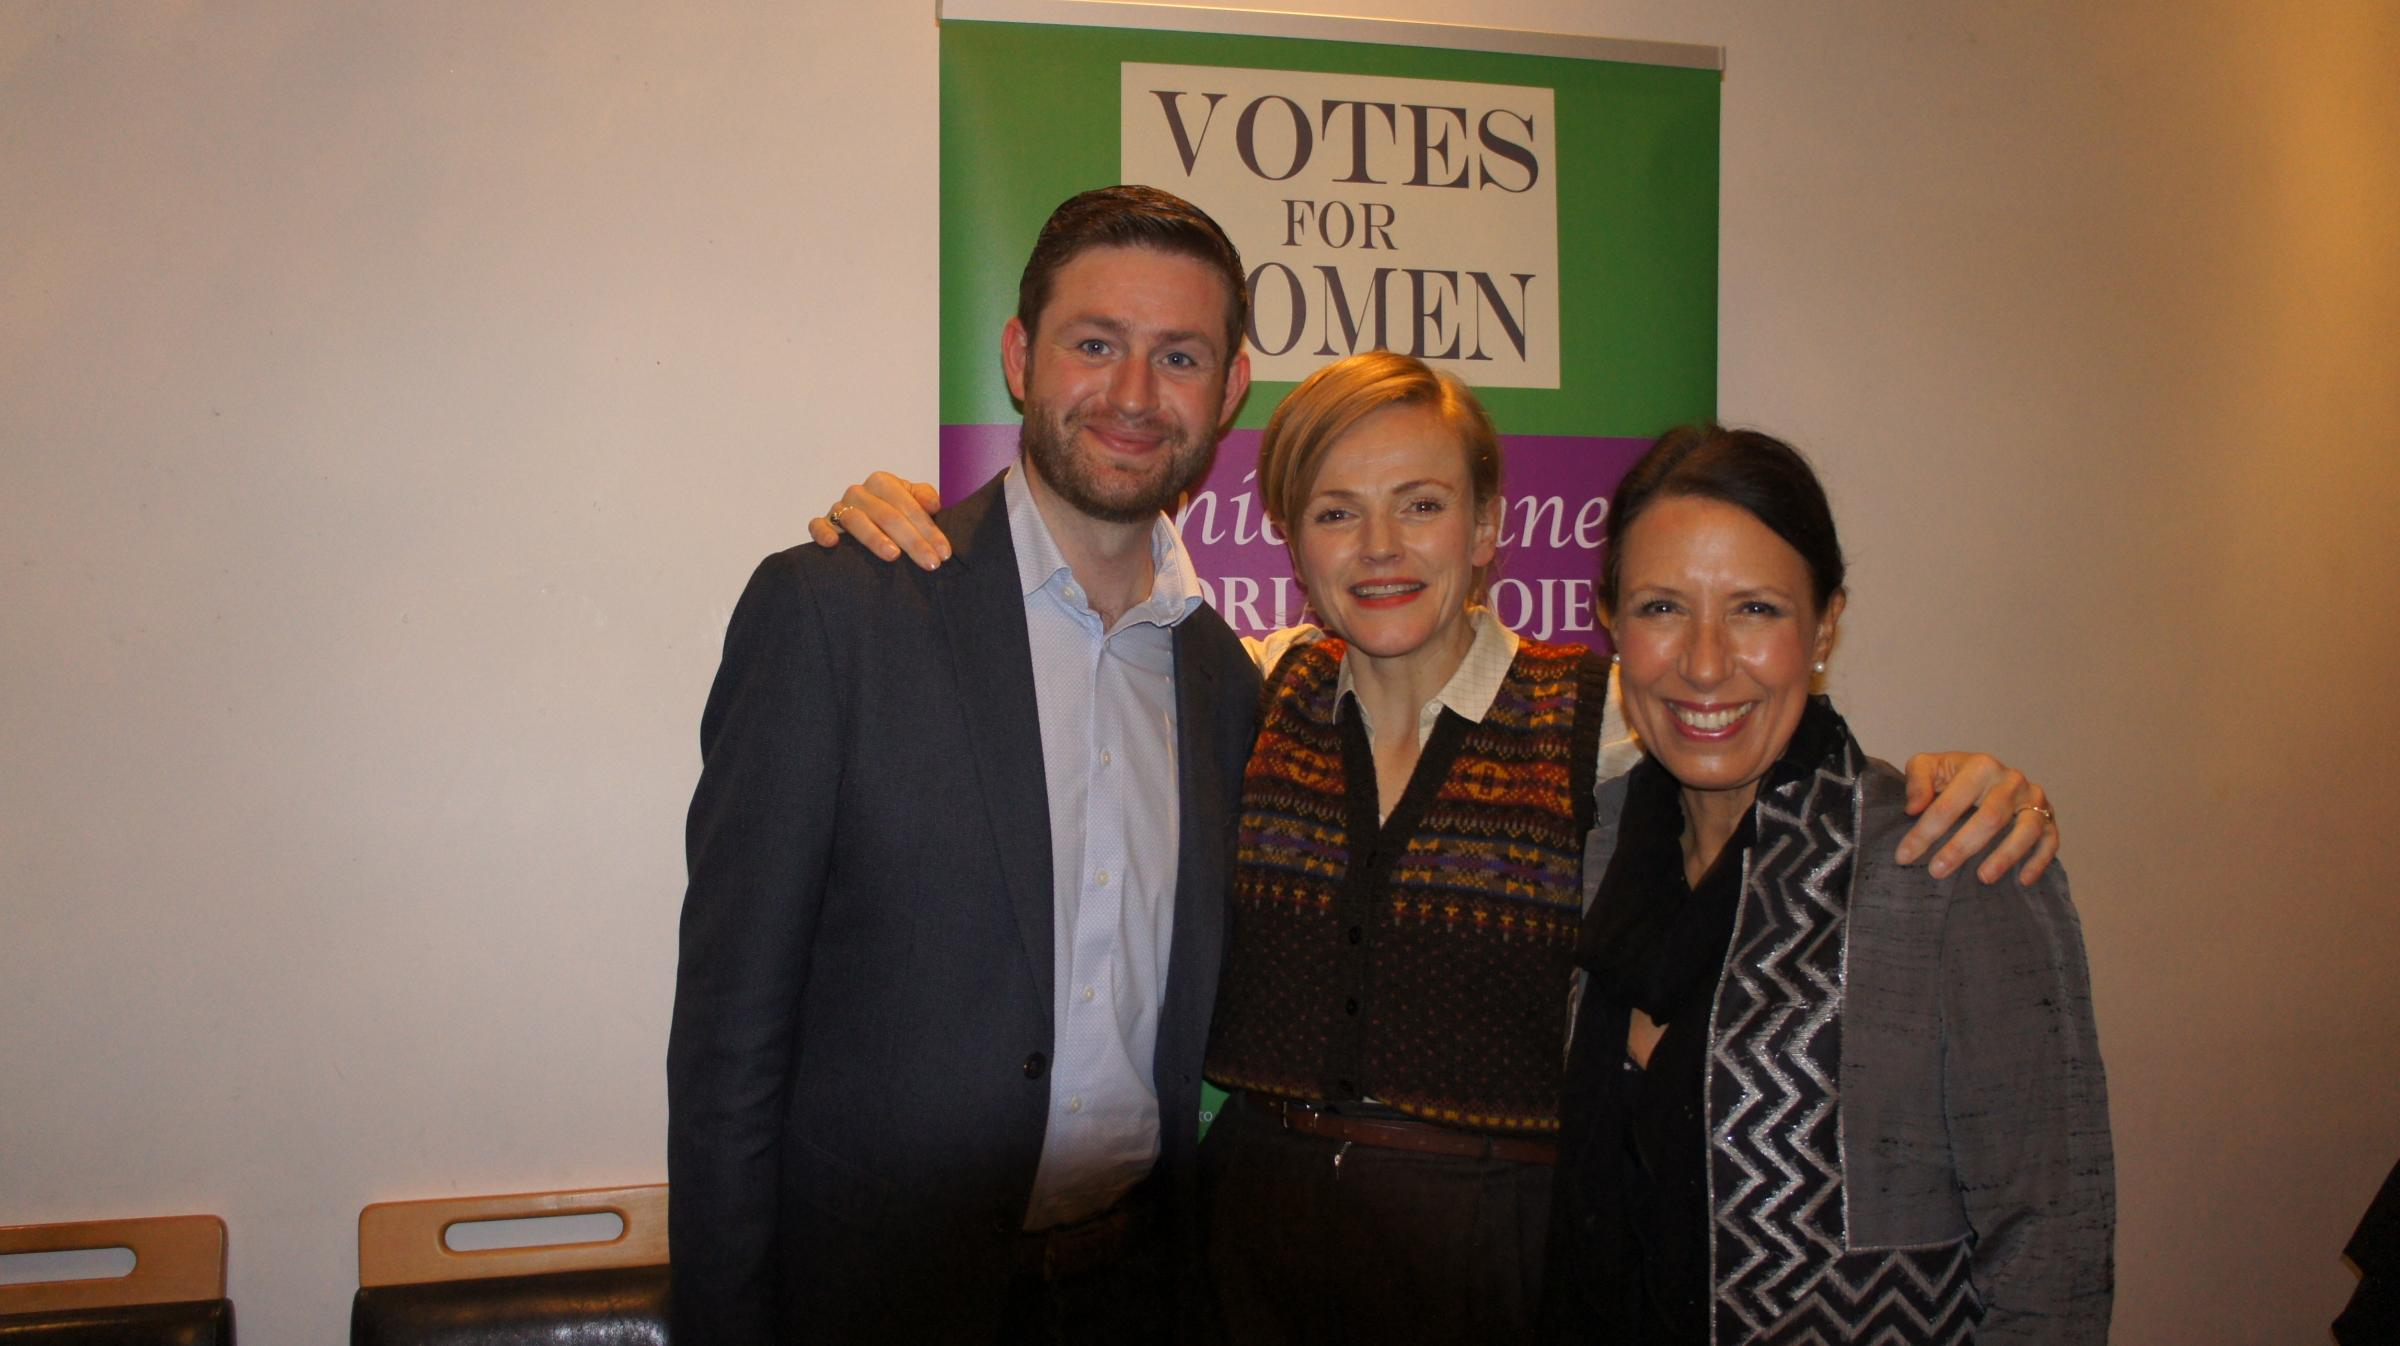 From left, Jim McMahon, MP for Oldham West and Royton, Maxine Peake, and Debbie Abrahams, MP for Oldham East and Saddleworth. Actress Maxine Peak backs calls for a statue honouring Oldham-Born Suffragette Annie Kenney. Pictured at the event at the Blue Ti